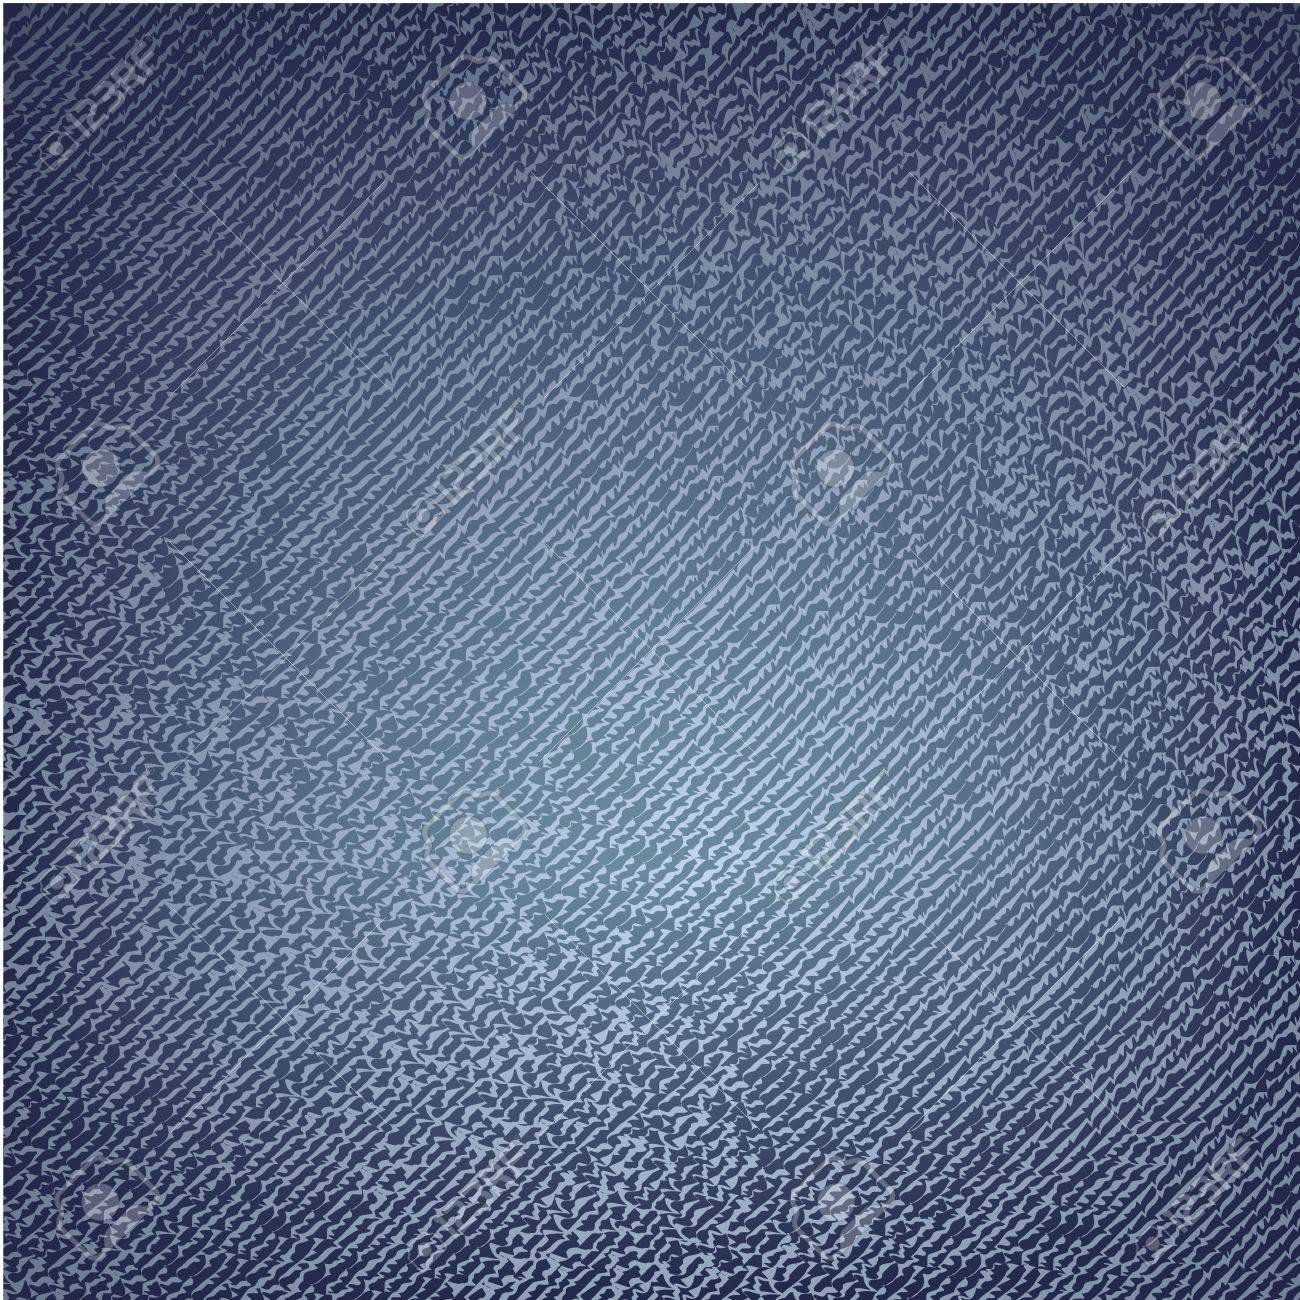 Jeans Texture Stock Vector - 18230872